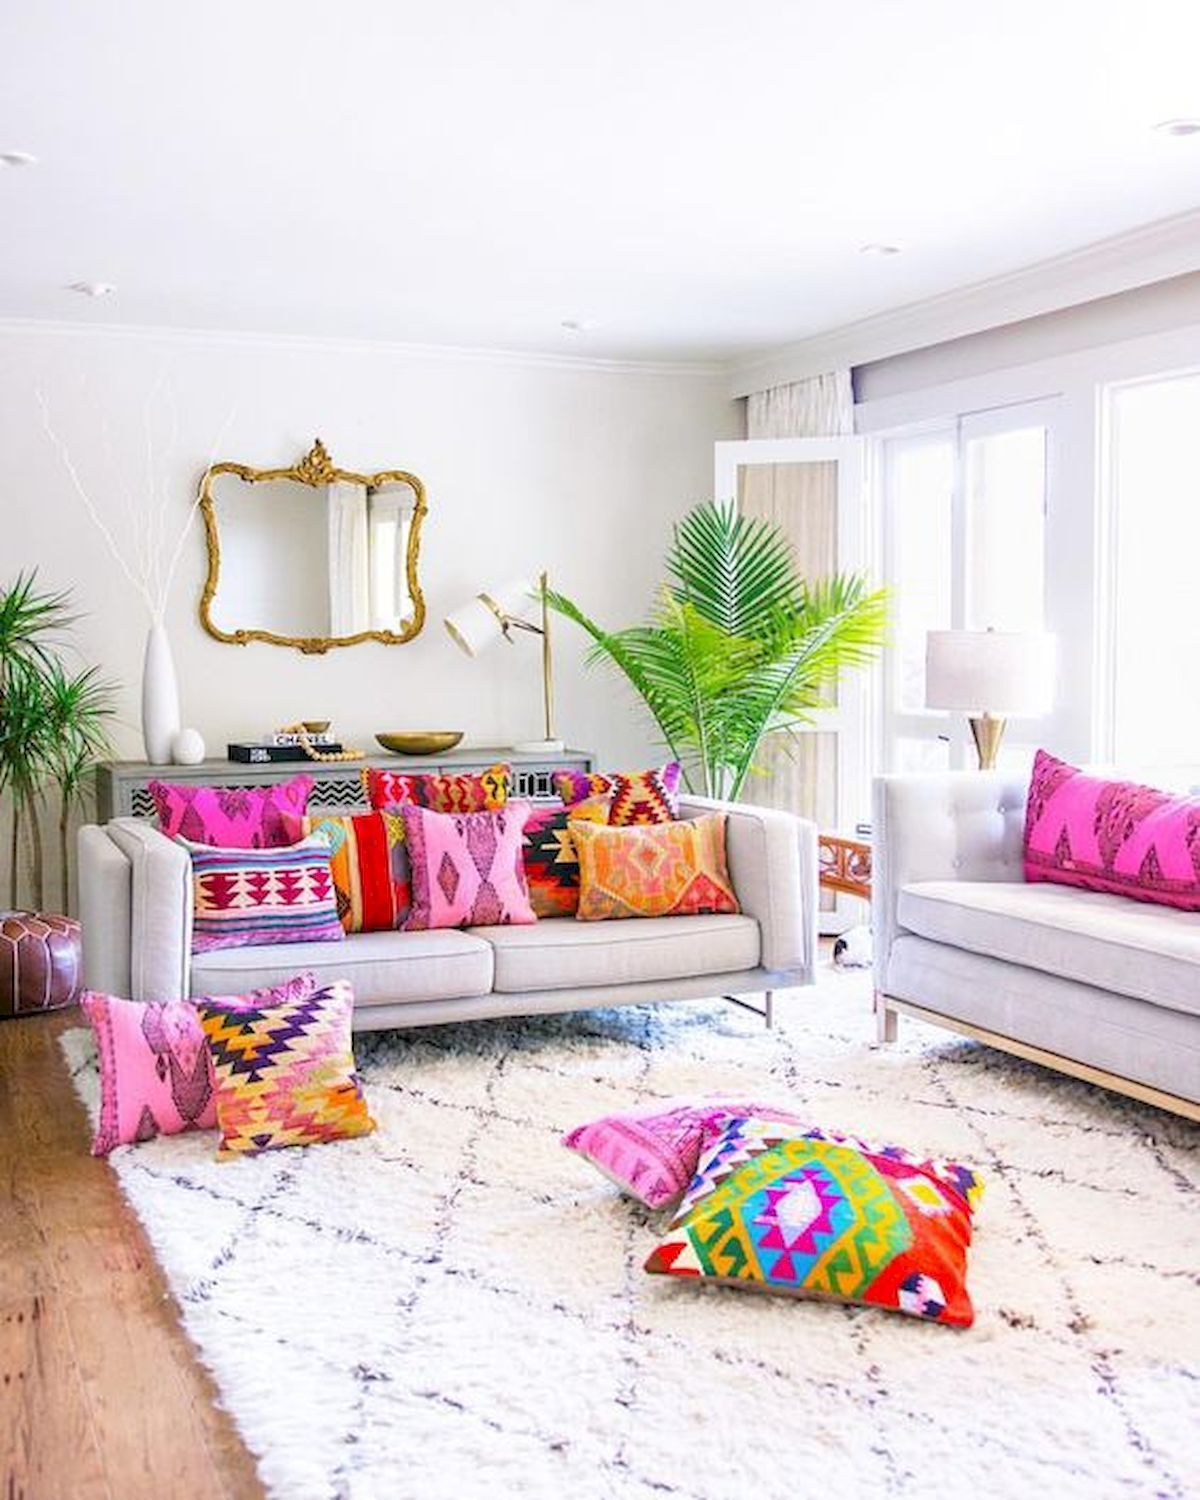 Photo of colorful home decor